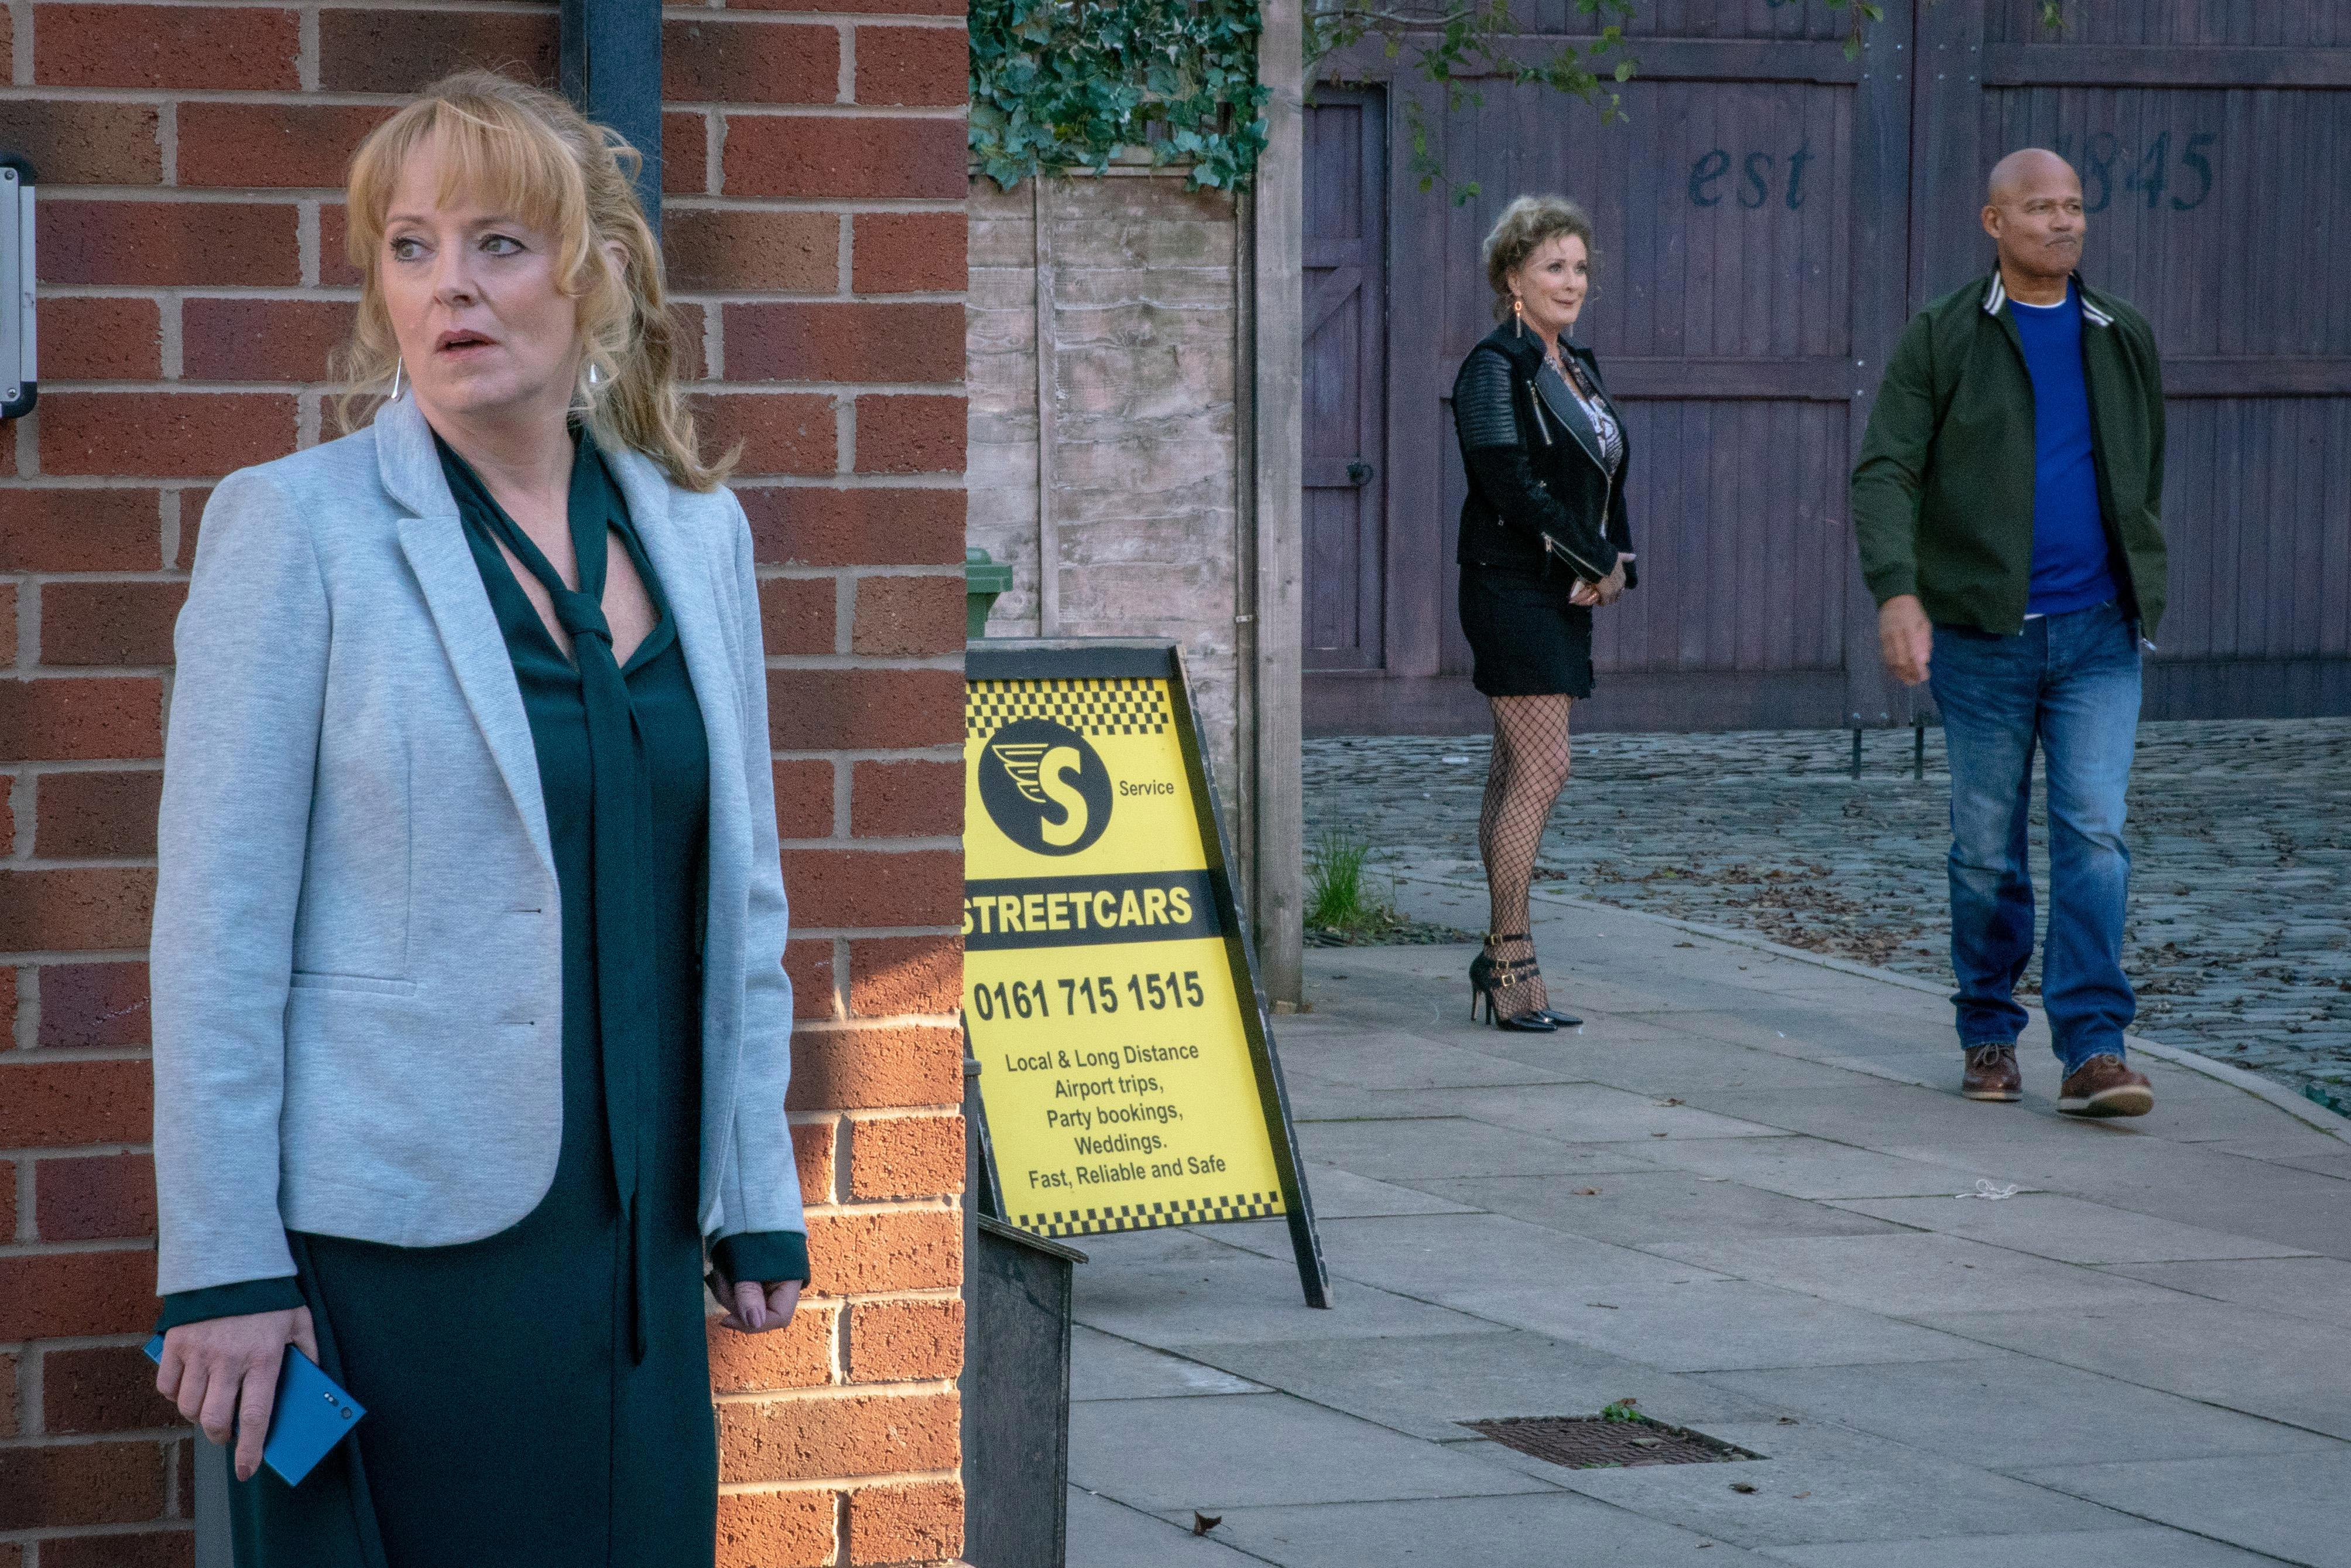 Coronation Street spoilers: Jenny Bradley tracks love rival Liz McDonald in revenge plot after one-night stand with her husband